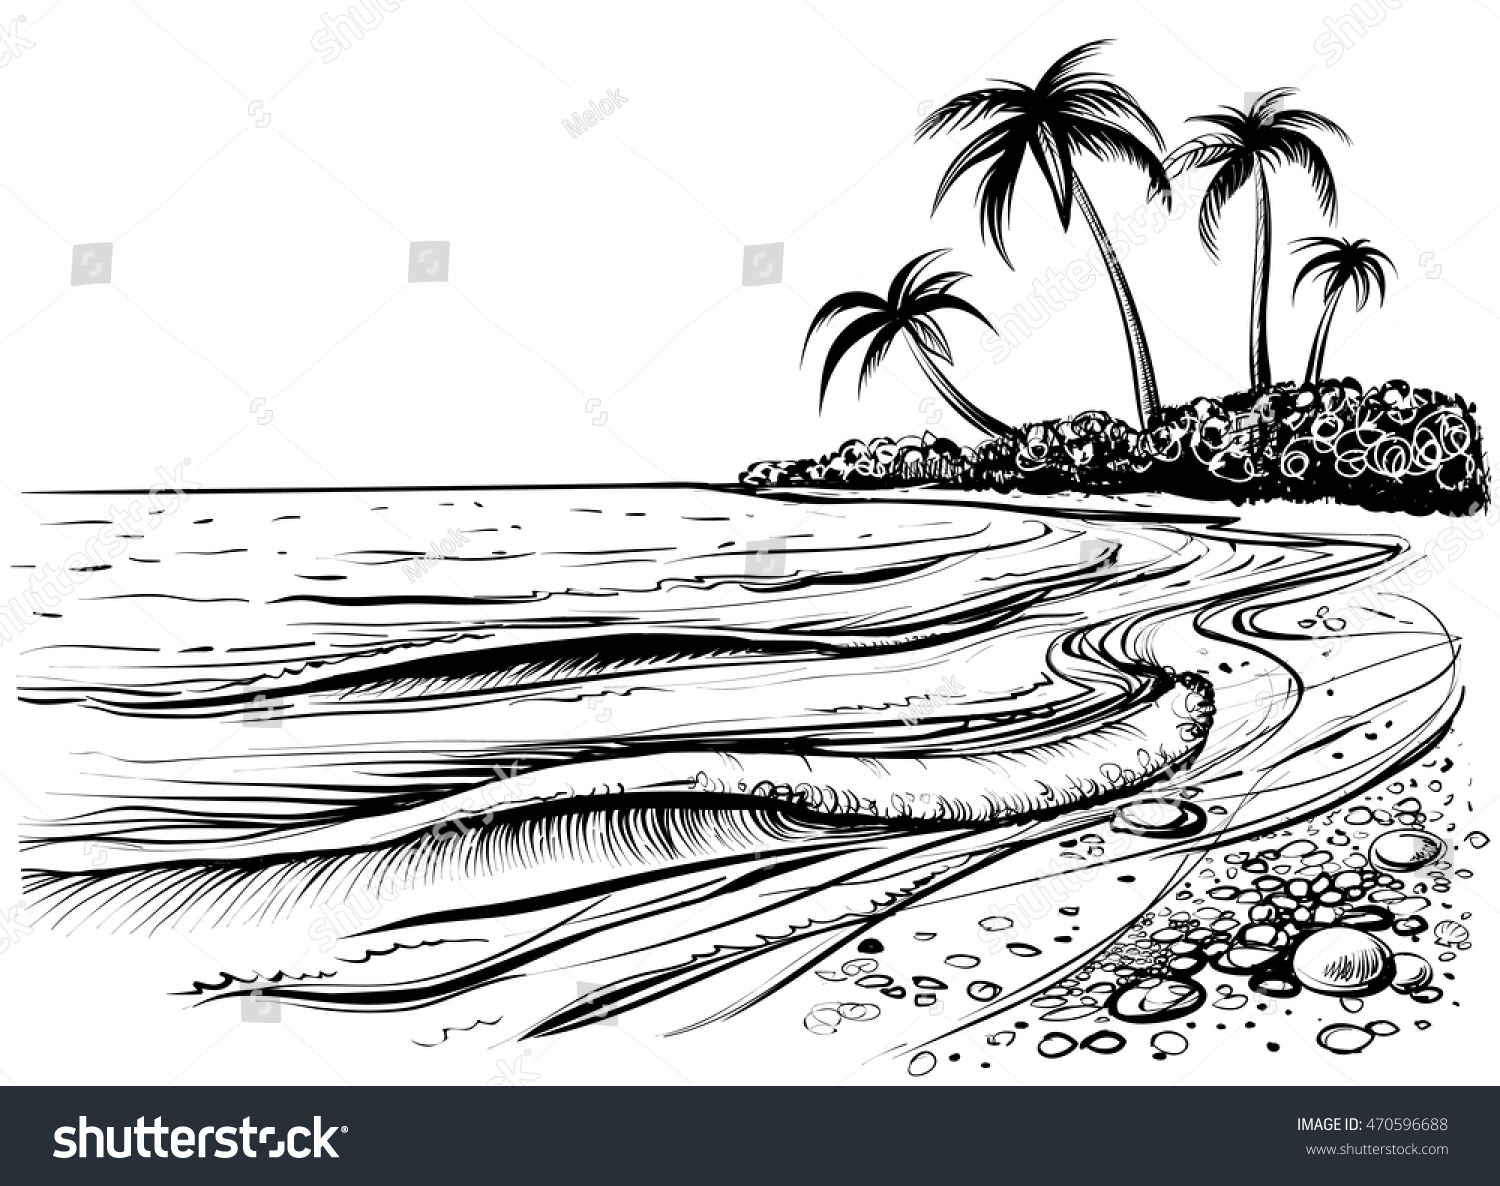 1389 Waves free clipart.